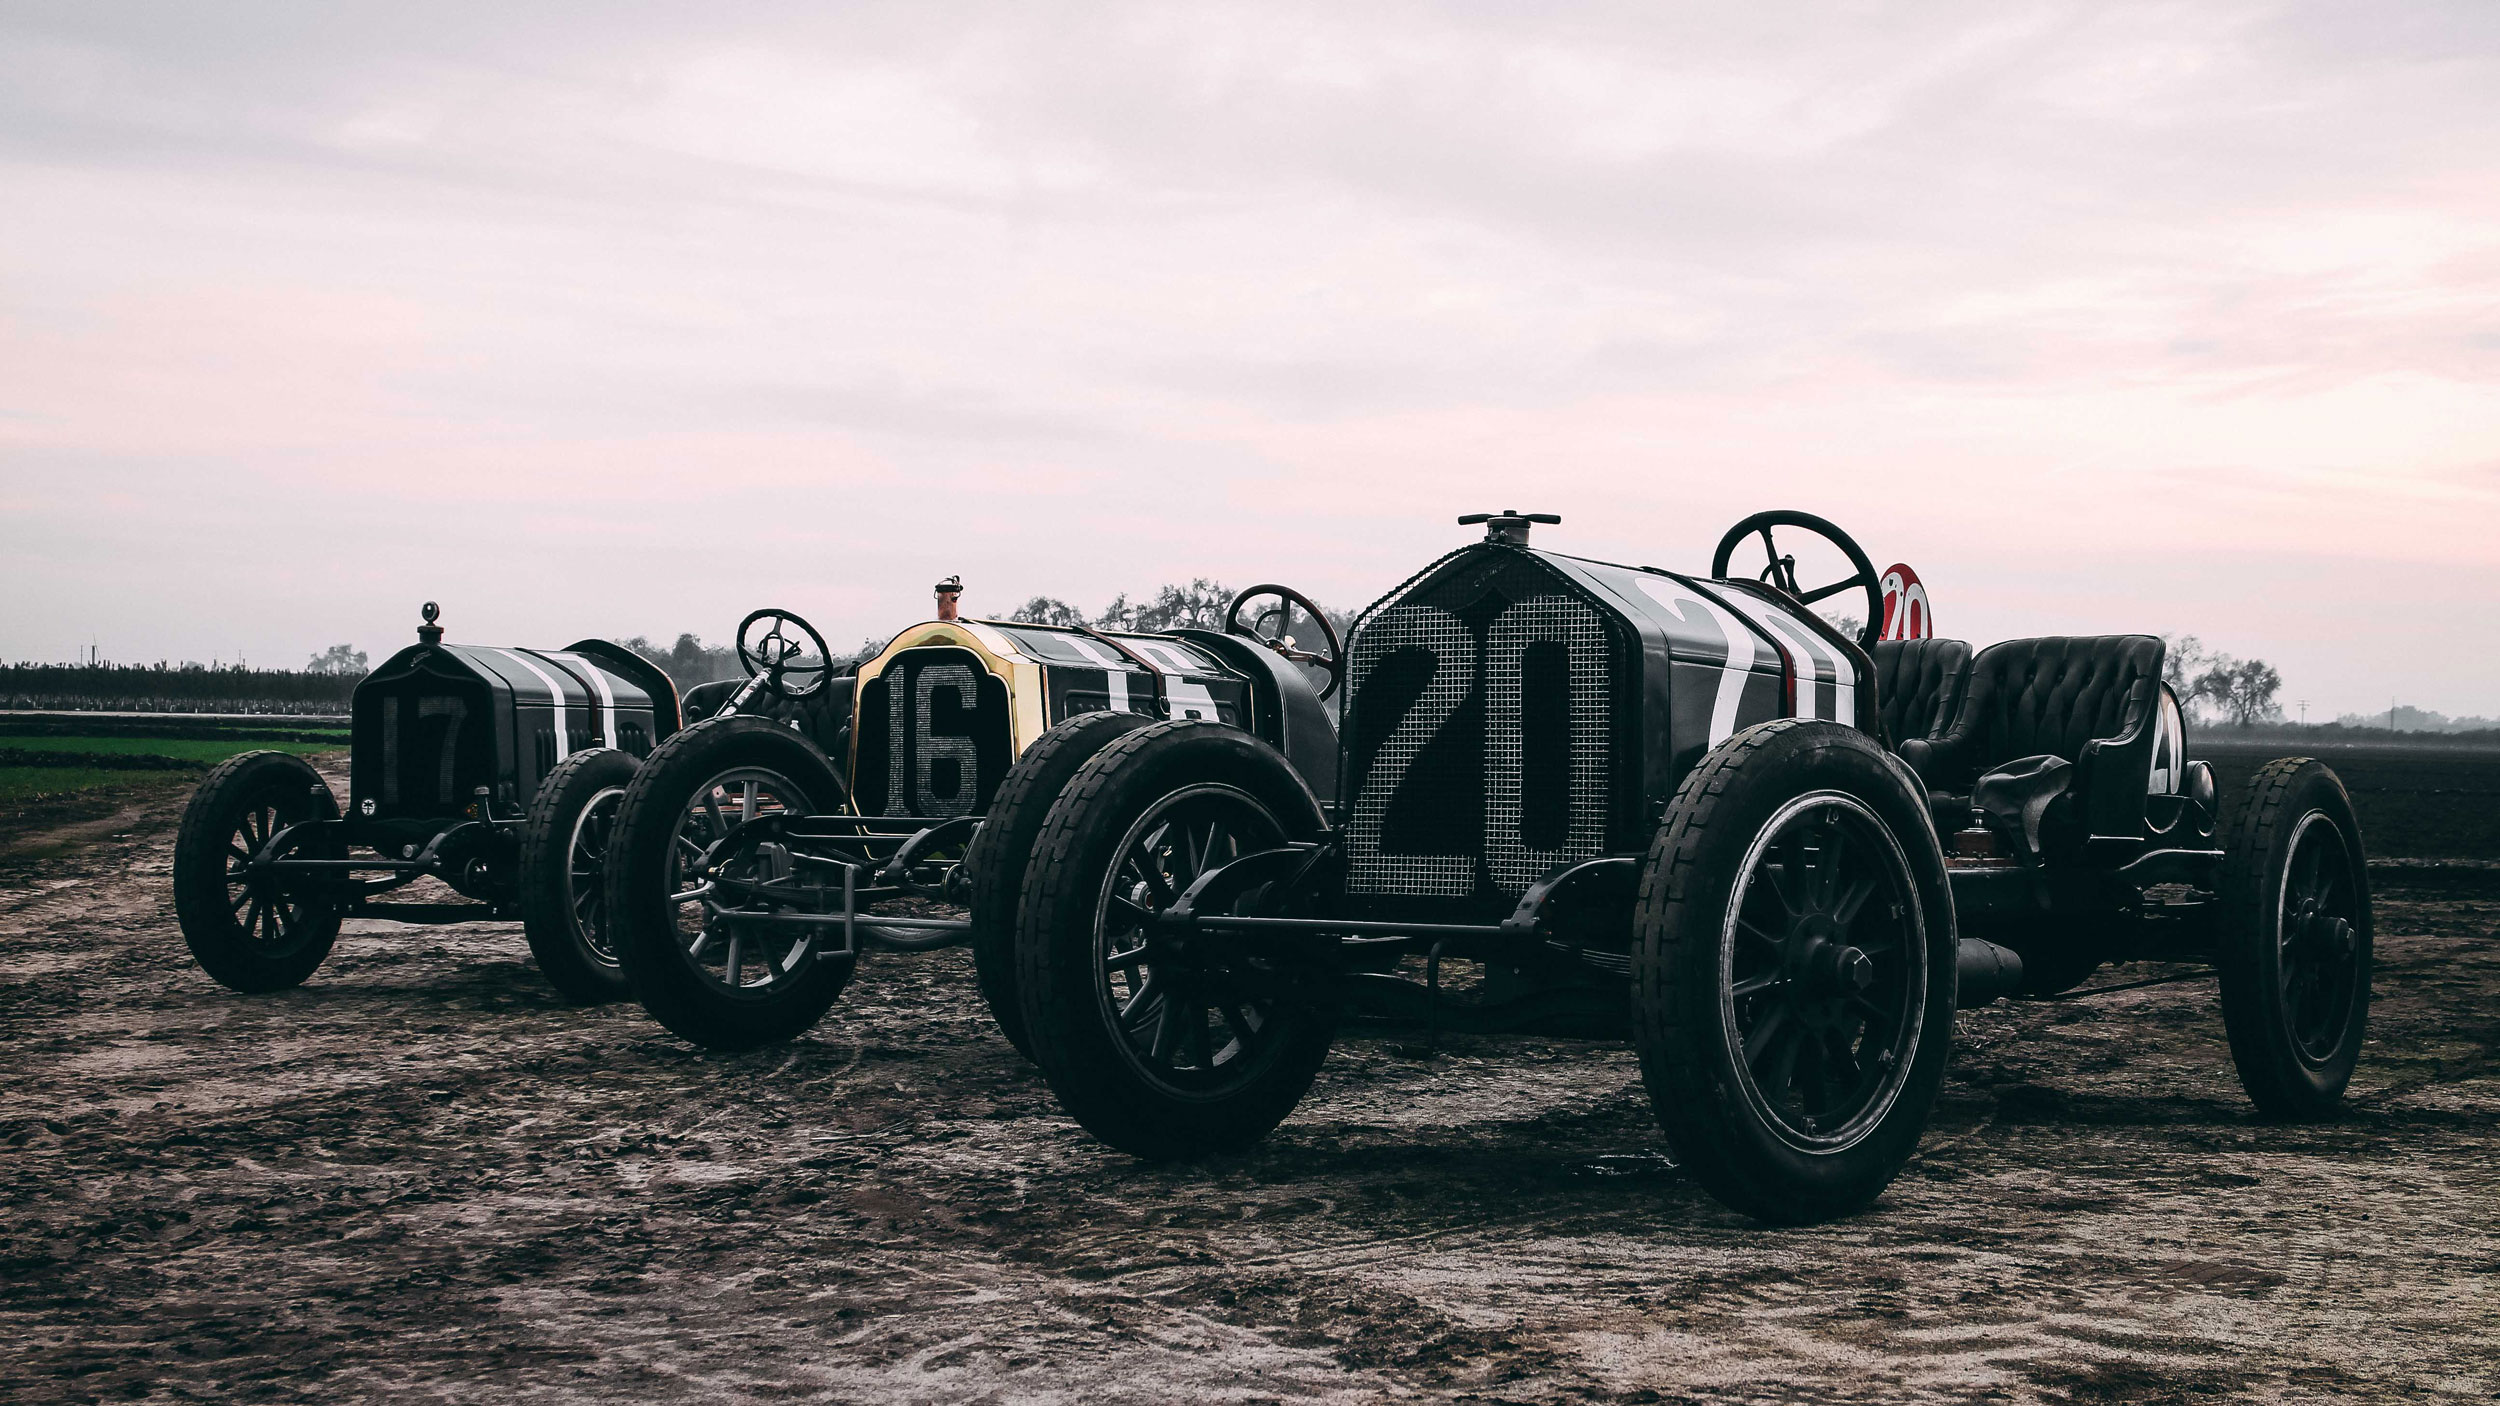 Group of vintage race cars